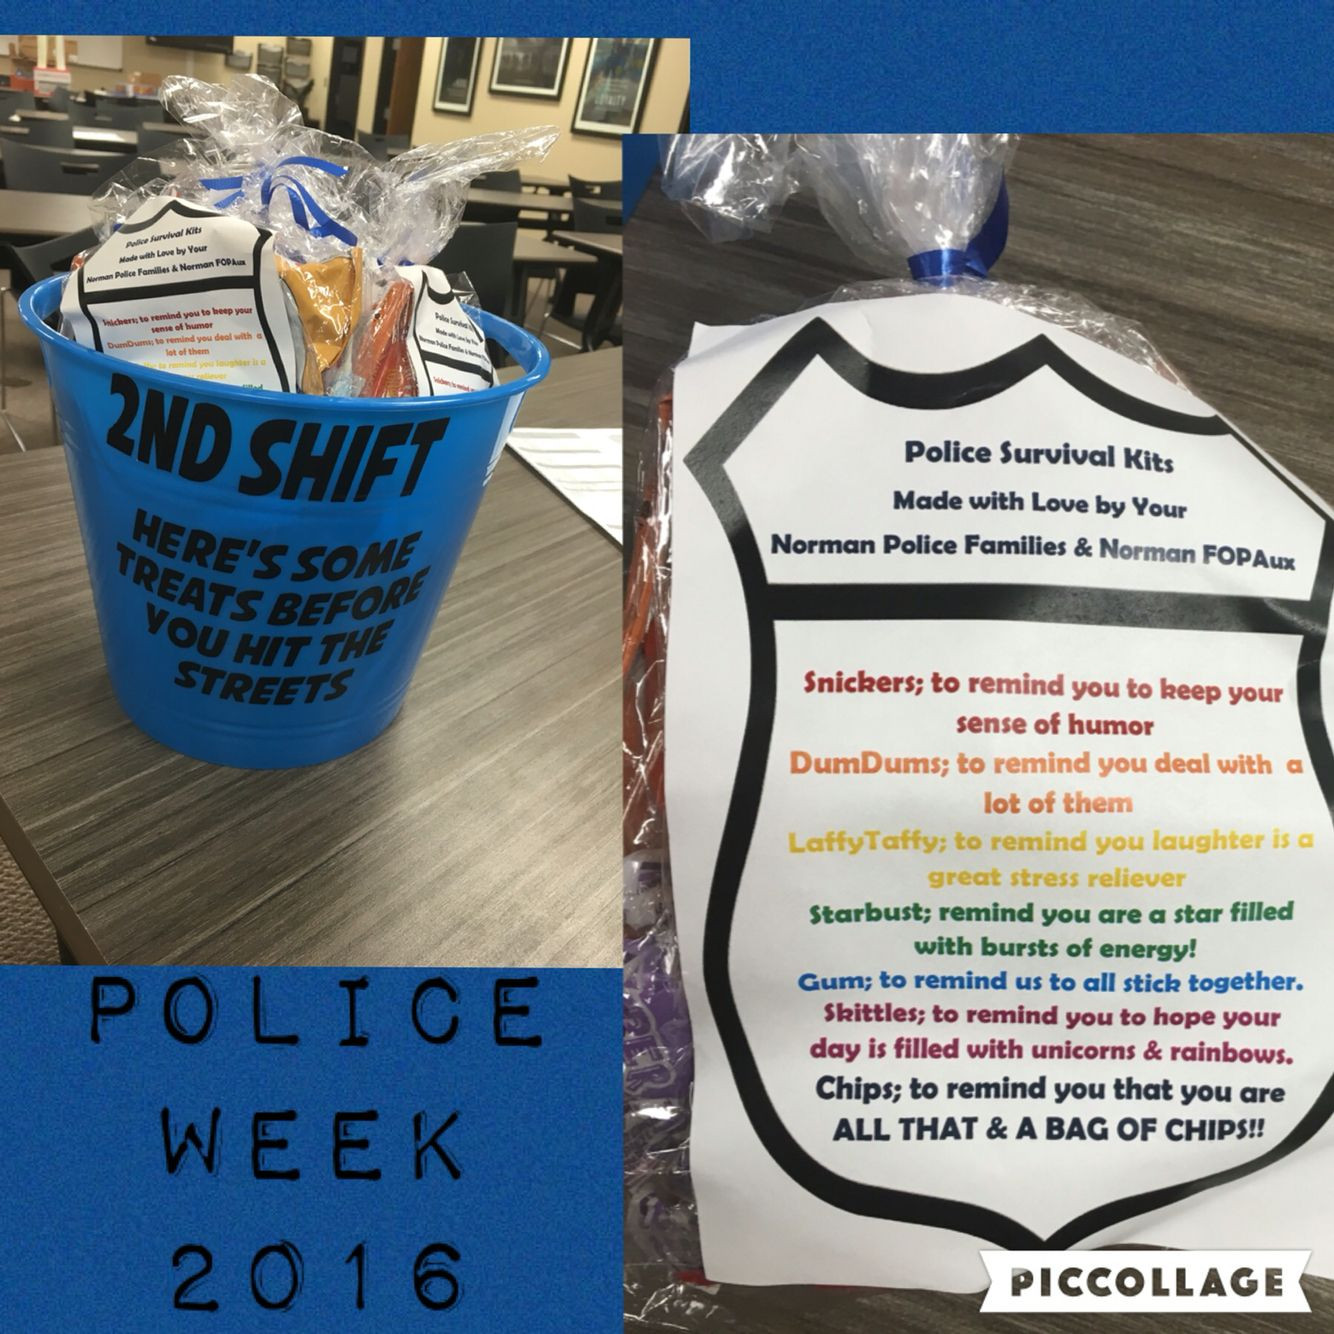 Best ideas about Police Gift Ideas . Save or Pin Police Survival Kits police Week ideas Thank a Police Now.